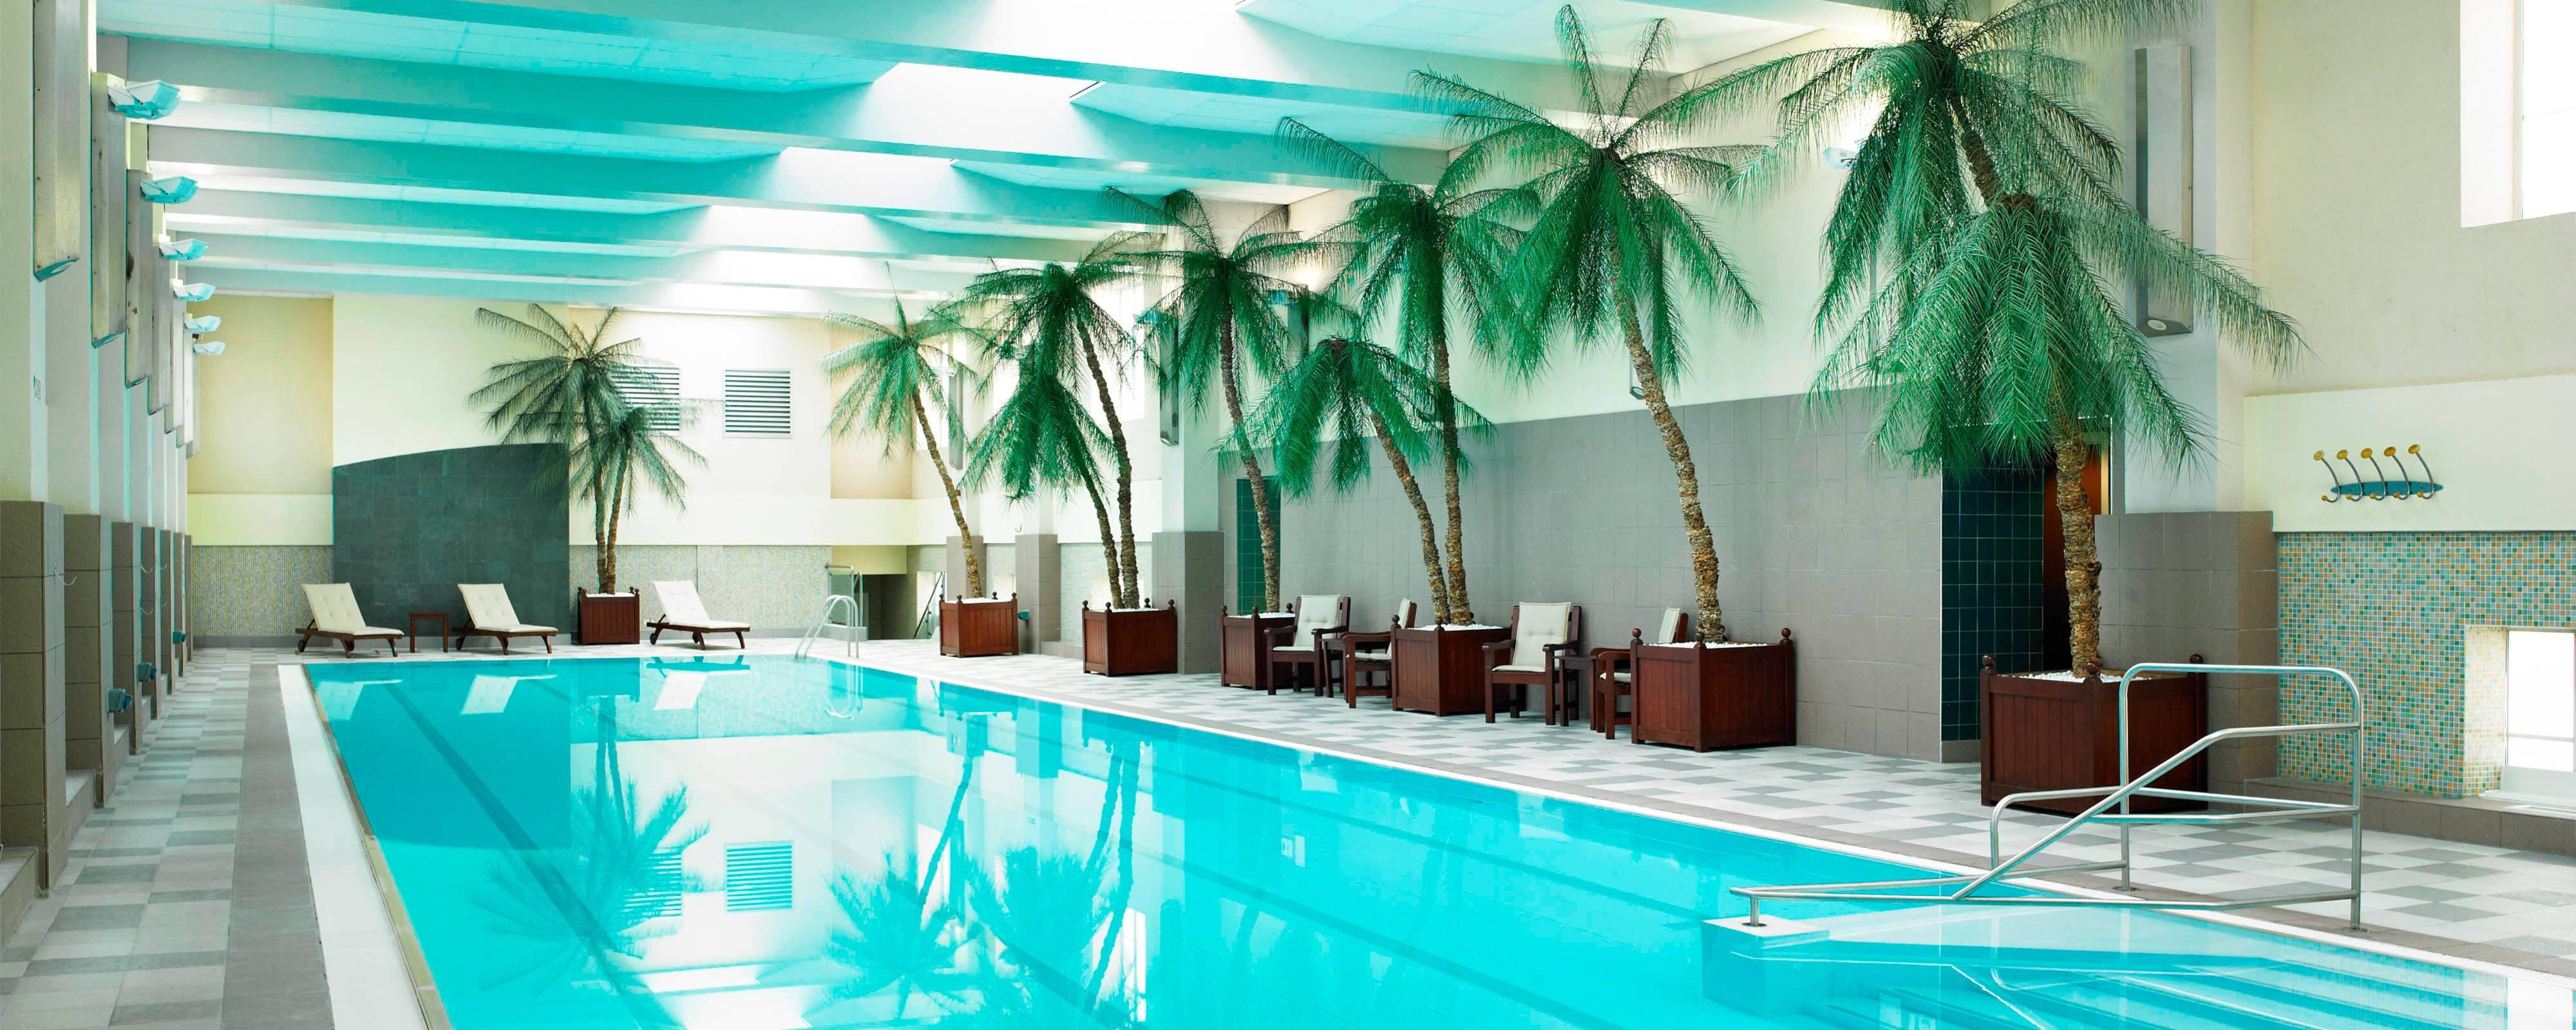 Westminster hotel gym london indoor pool london - Apartments with swimming pool london ...